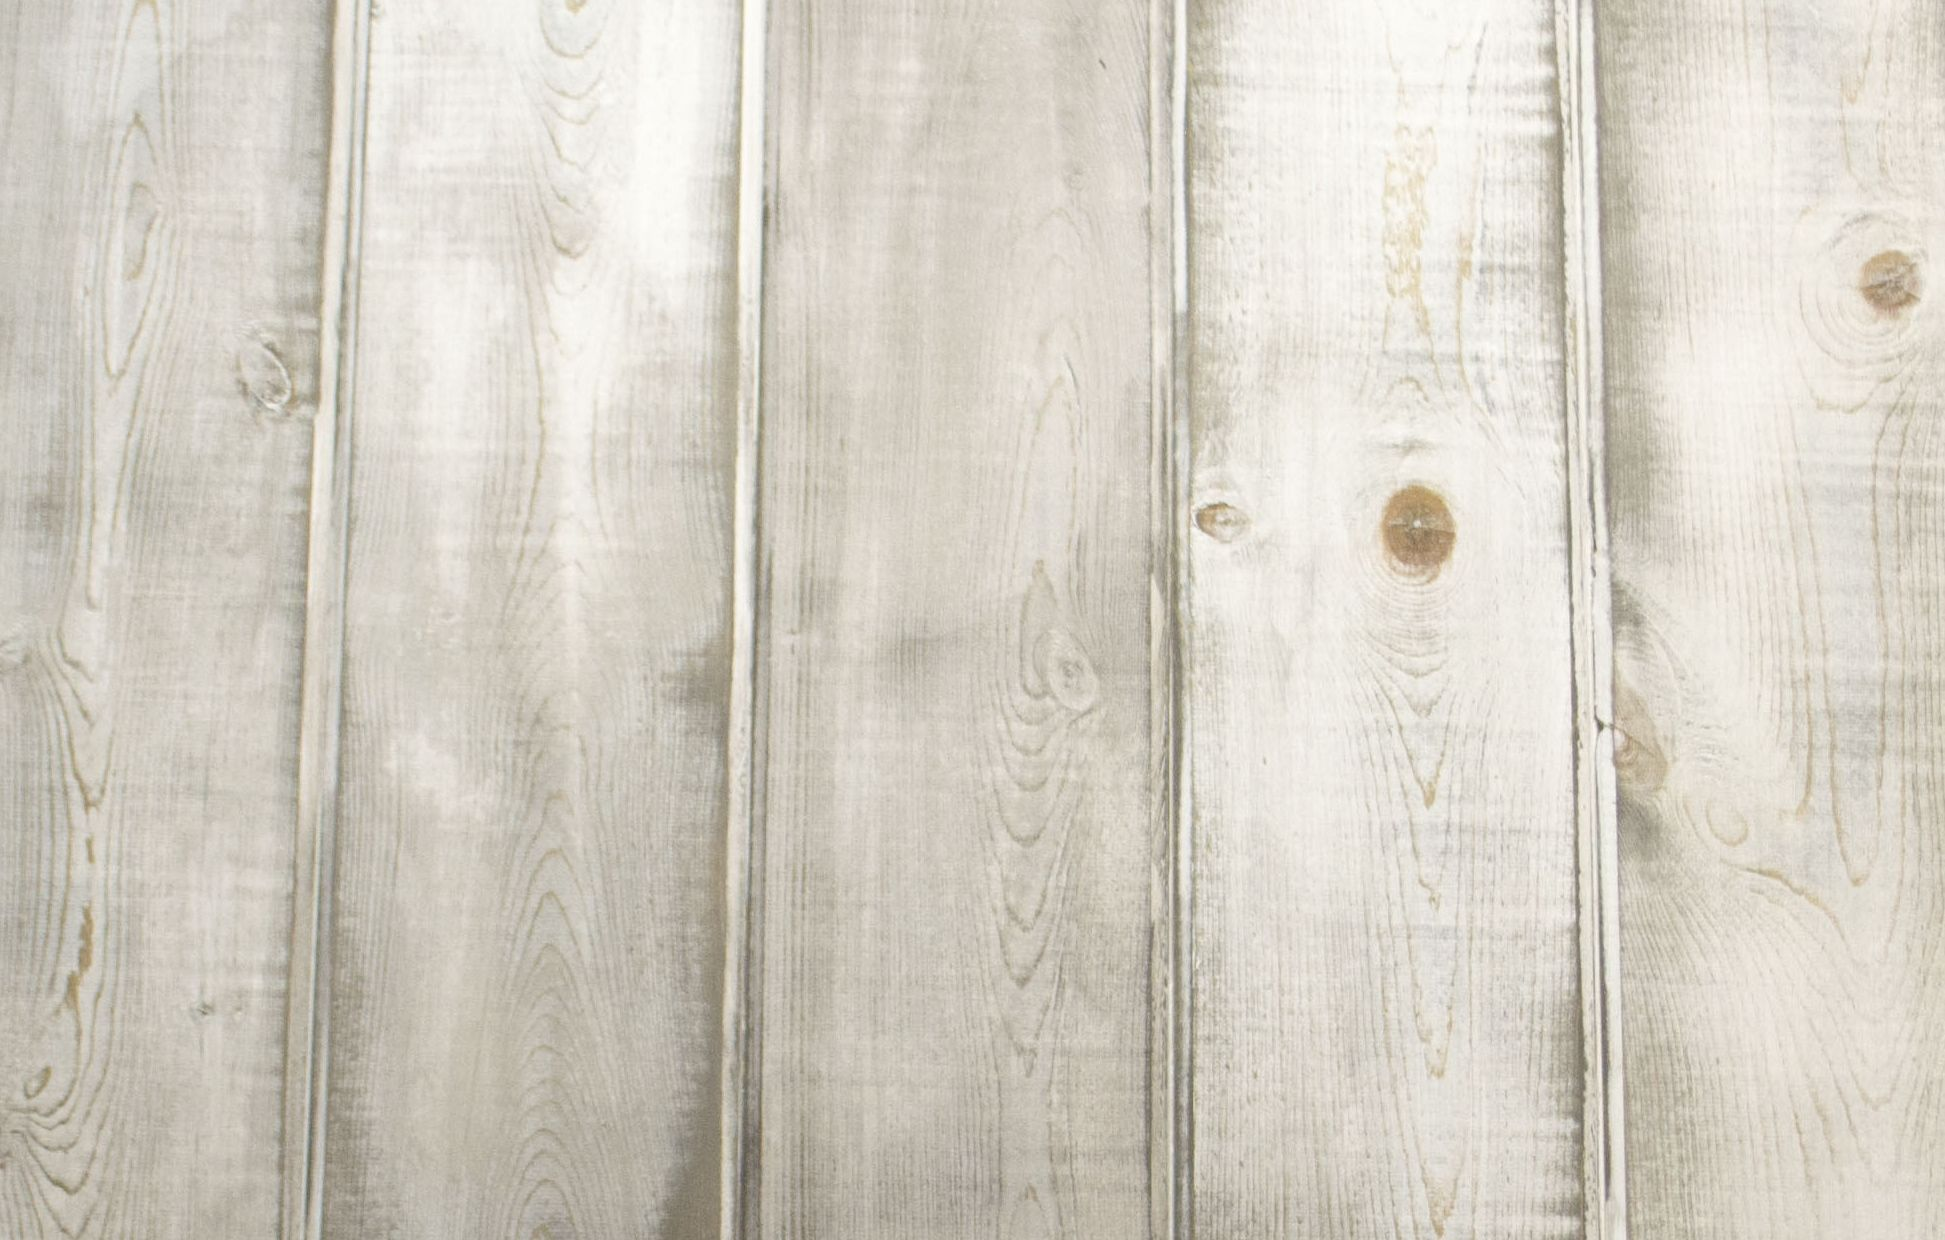 Barn Wood Pine Tongue Groove Planks Mdf Boards With Images Barnwood Paneling Barn Wood Reclaimed Barn Wood